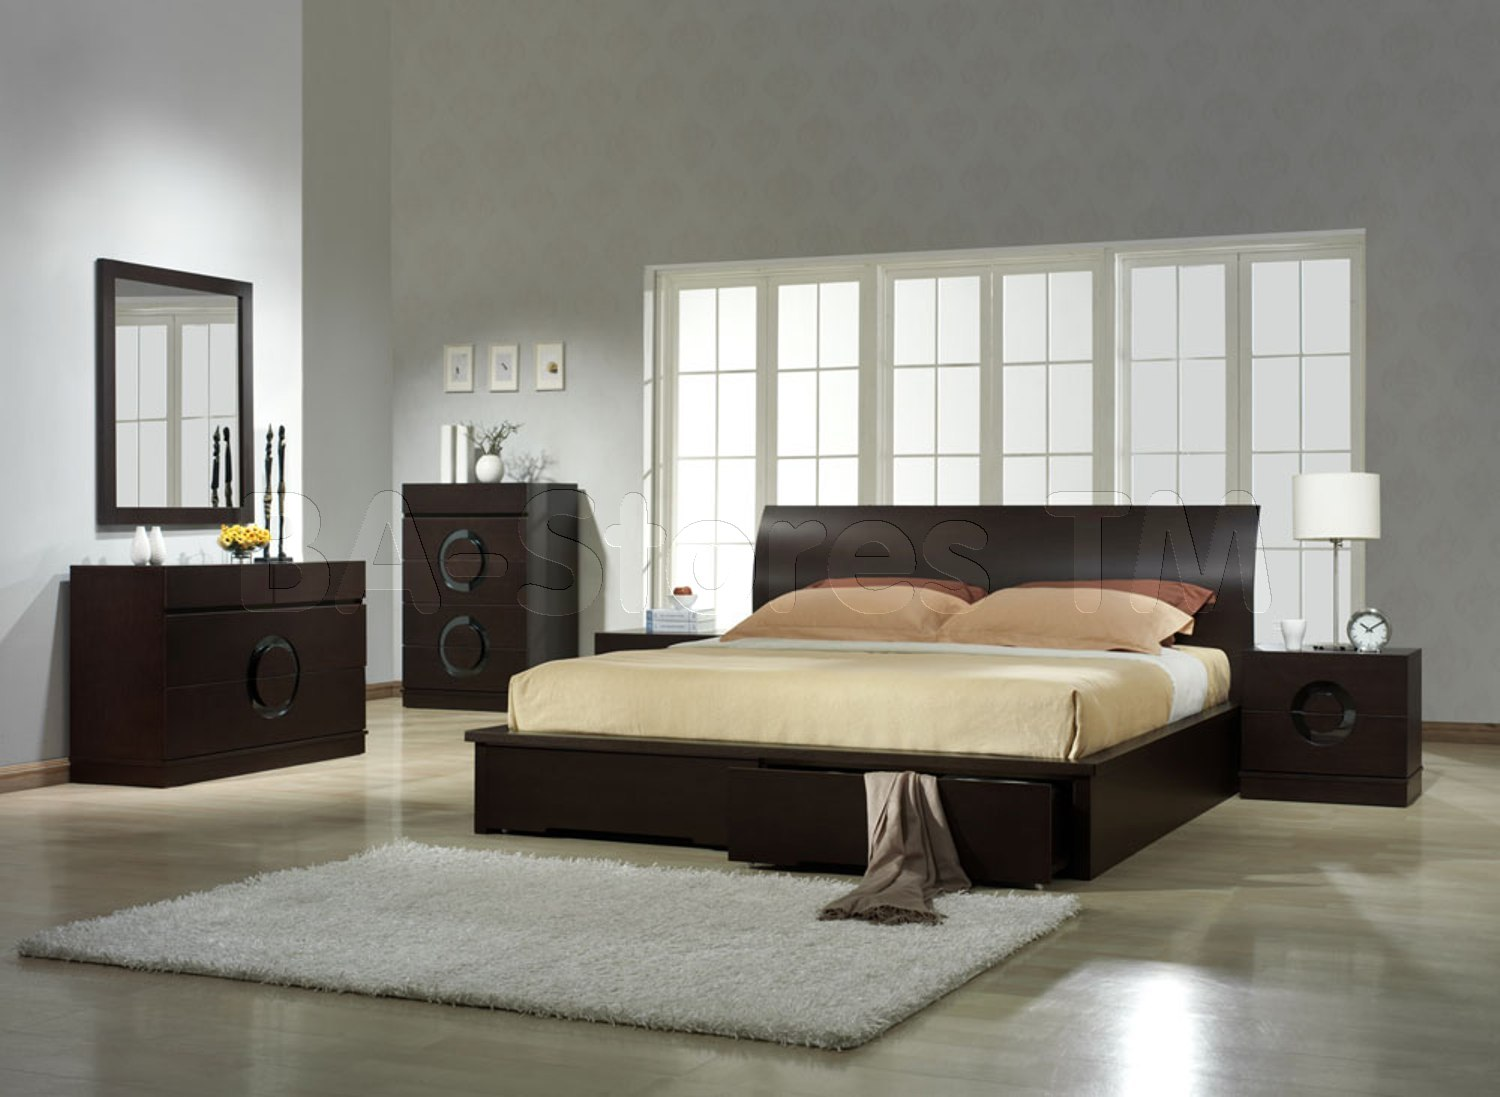 bedroom furniture sets queen size photo - 3